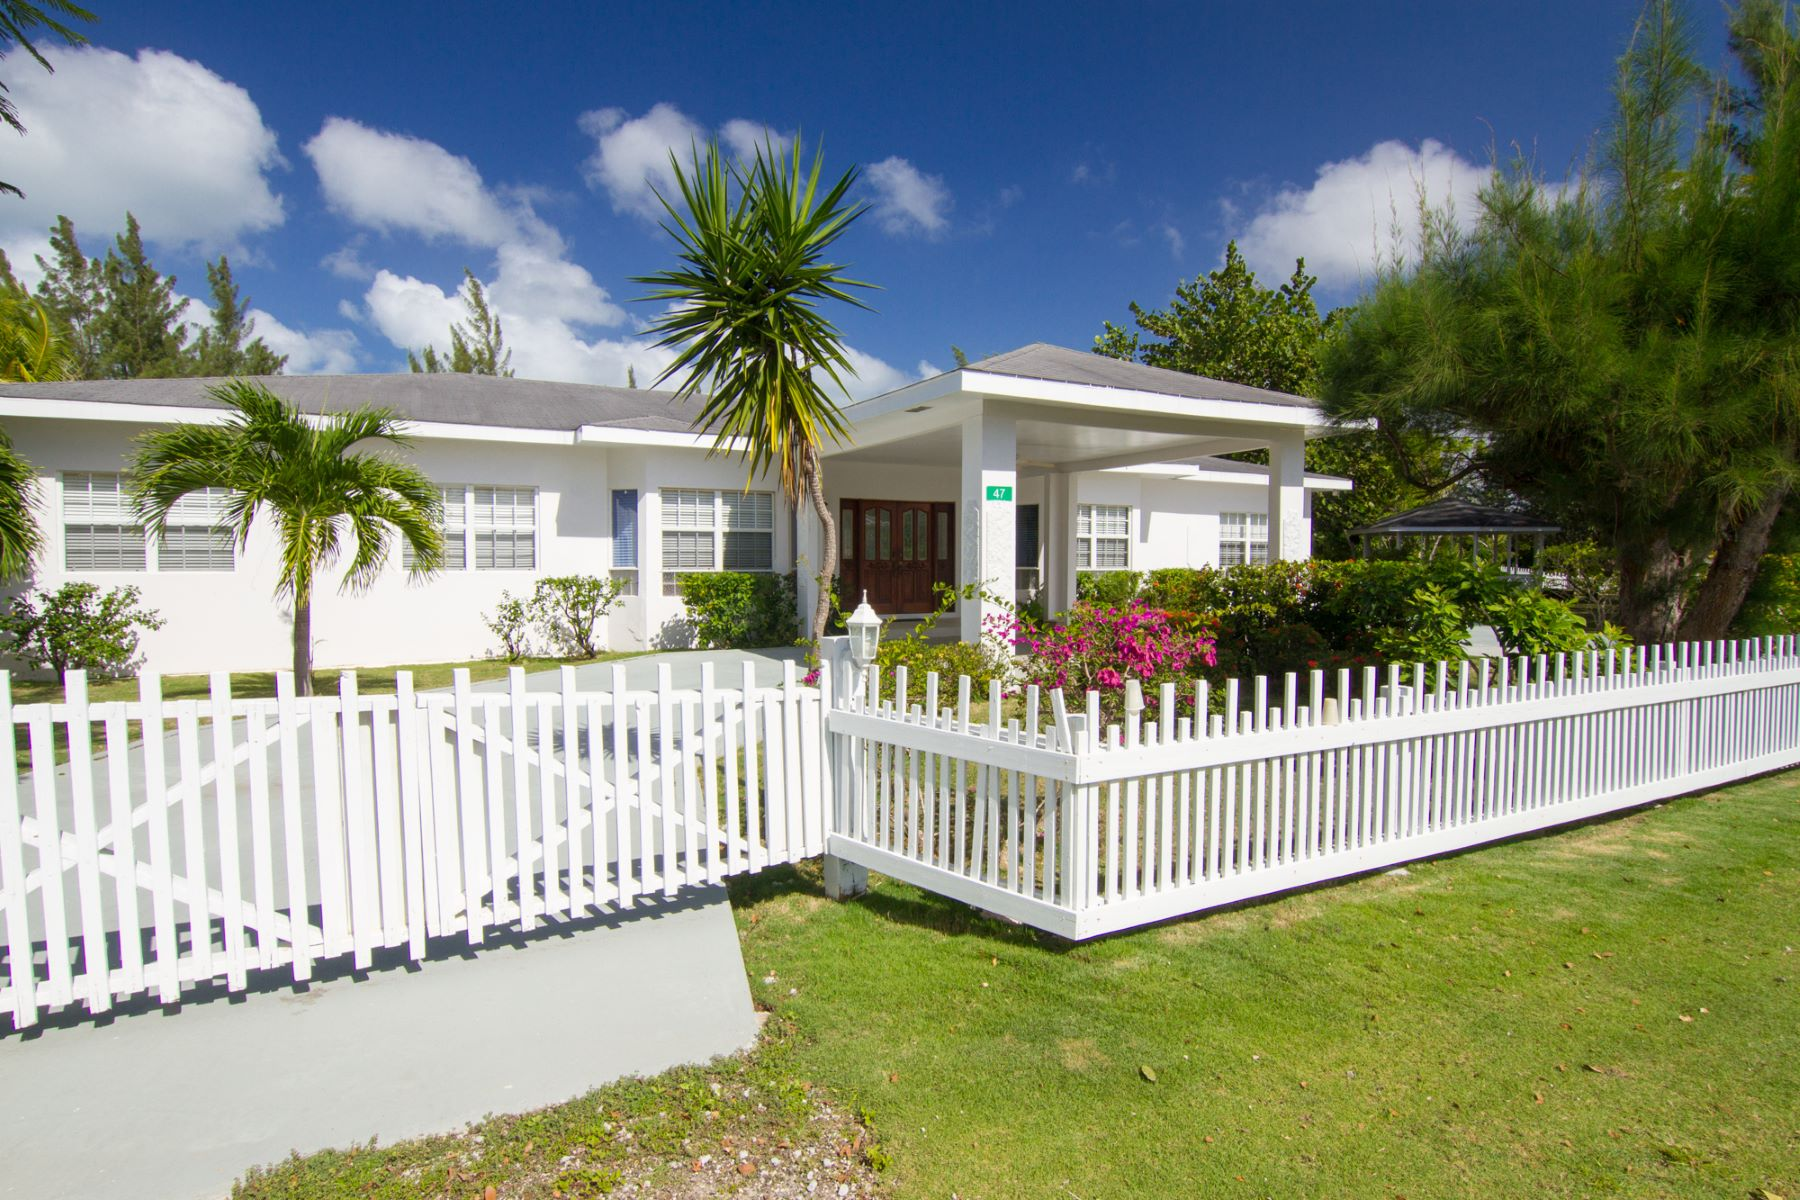 Single Family Home for Sale at Plantation Home Satinwood St #47 George Town, Grand Cayman, KY1 Cayman Islands